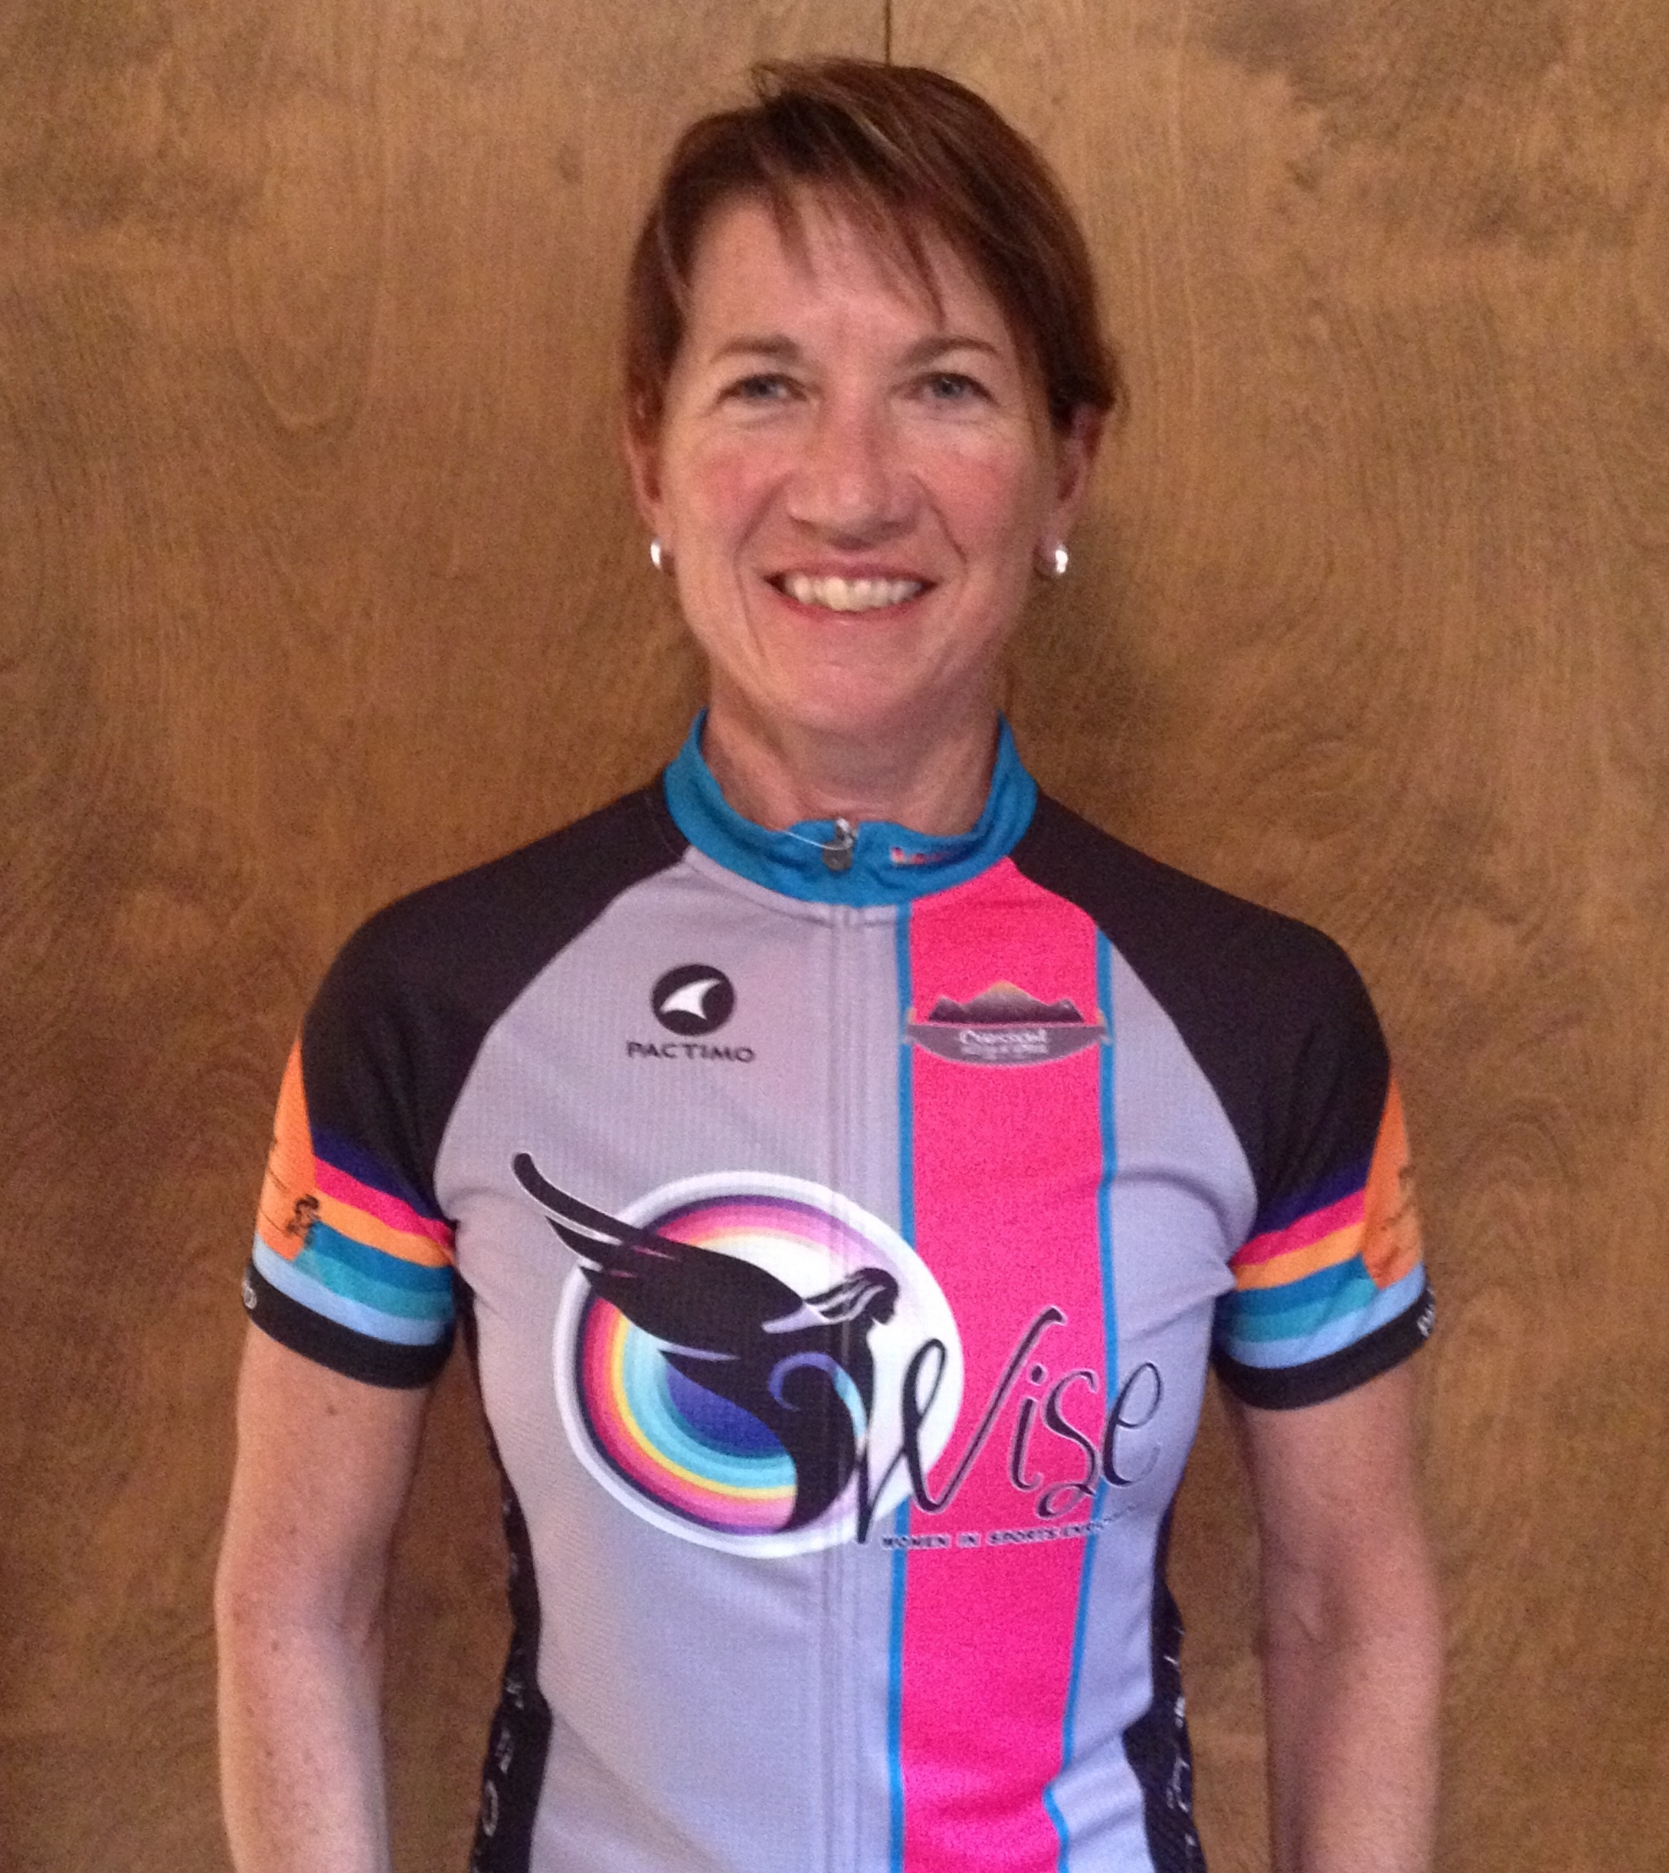 Ann Trombley MSP.T. - Physical Therapist, Olympian, Cycling Coach, Skills instructorTrailmaster Coaching and Physical Therapyann@trailmastercoaching.comwww.trailmastercoaching.com303.278.0291